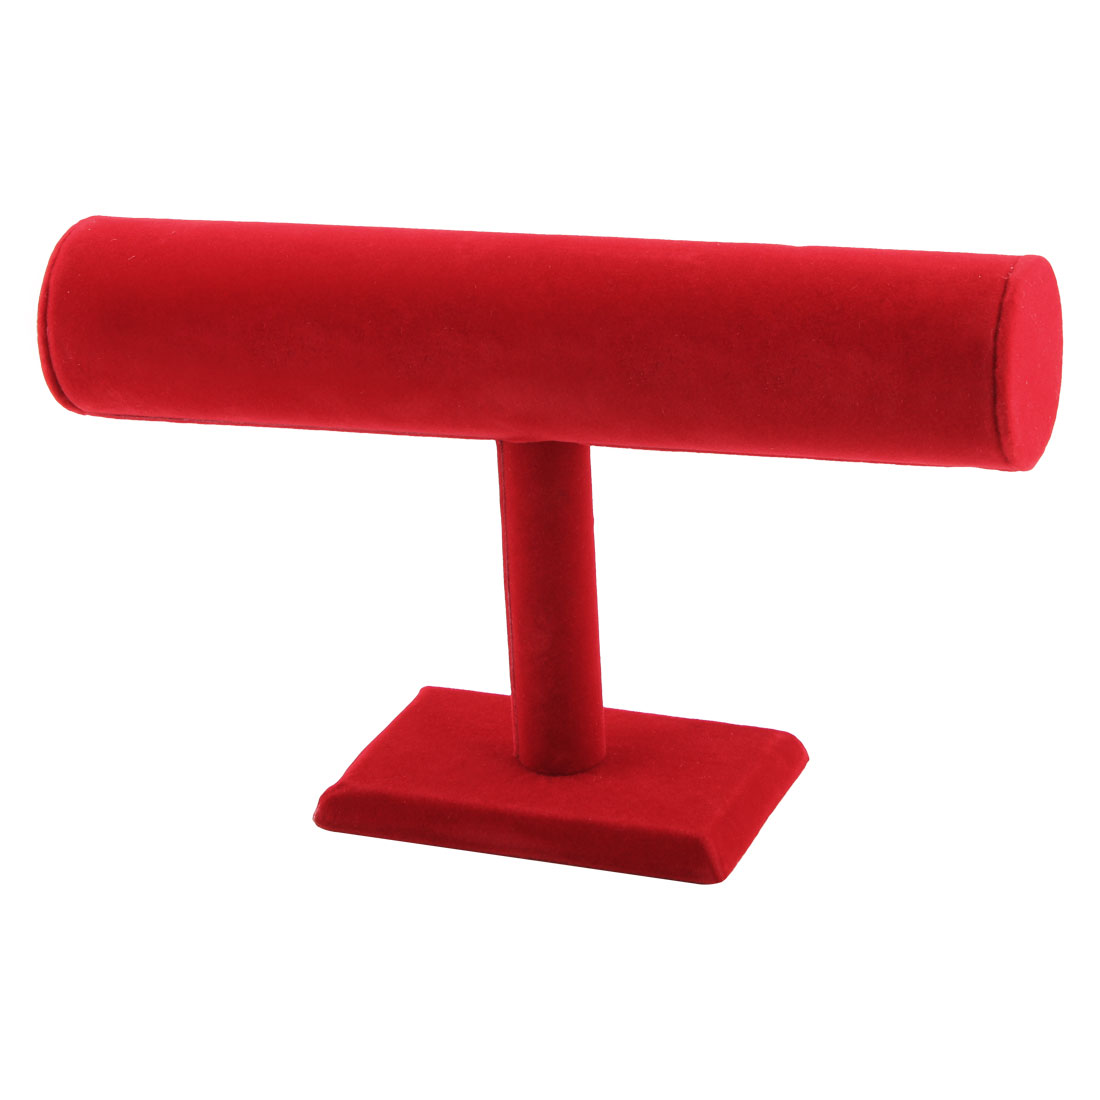 Velvet T-Bar Display Necklace Jewelry Watch Bangle Bracelet Organizer Stand Holder Red